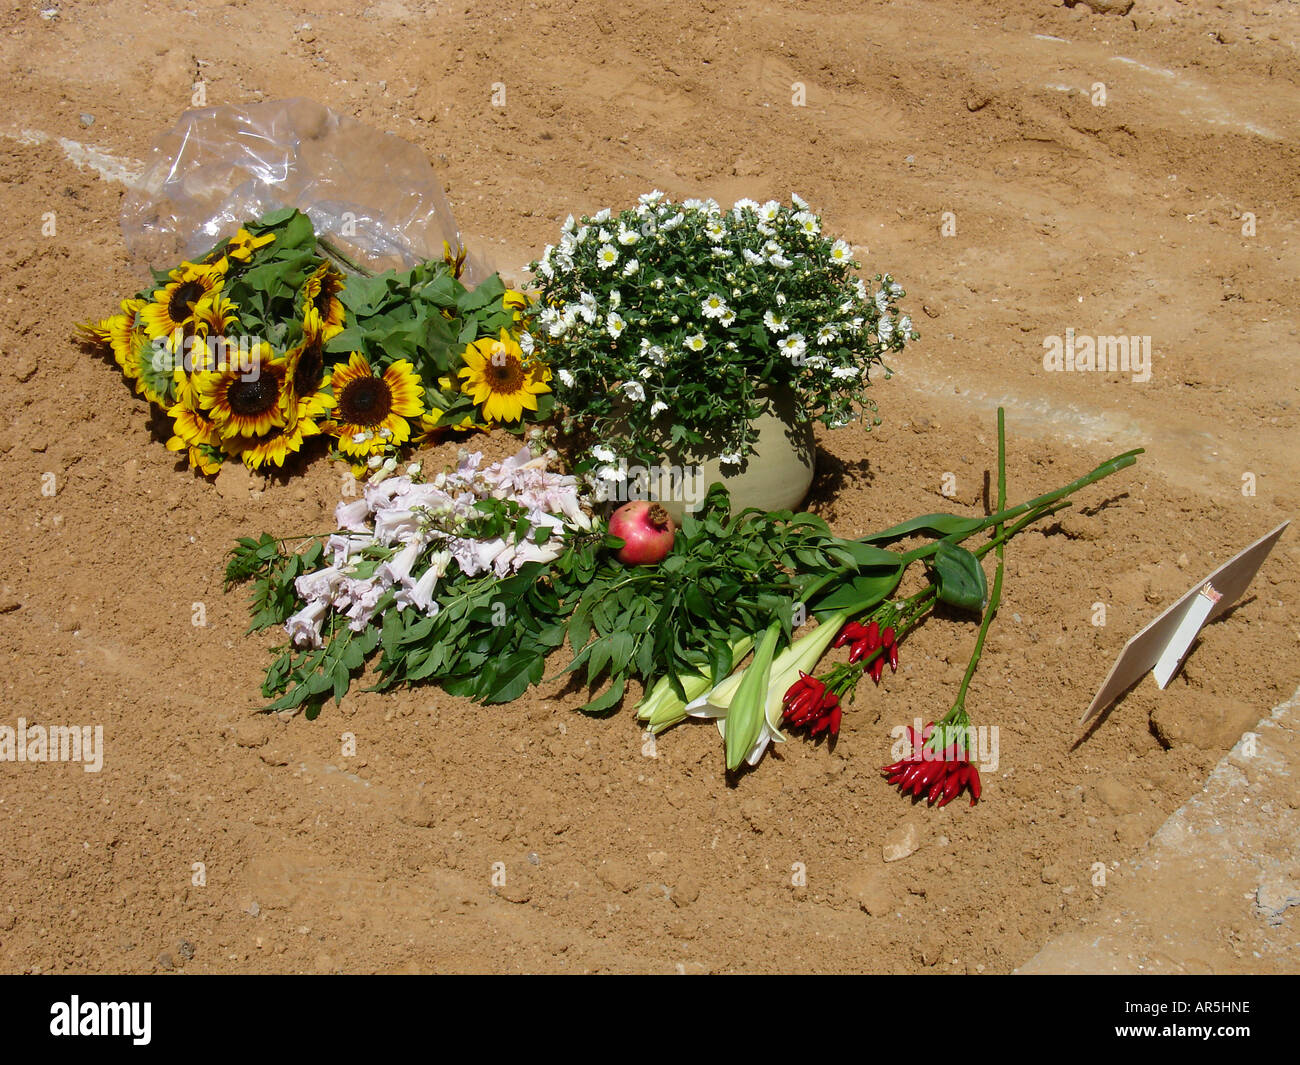 Jewish Burial Site Stock Photos Jewish Burial Site Stock Images